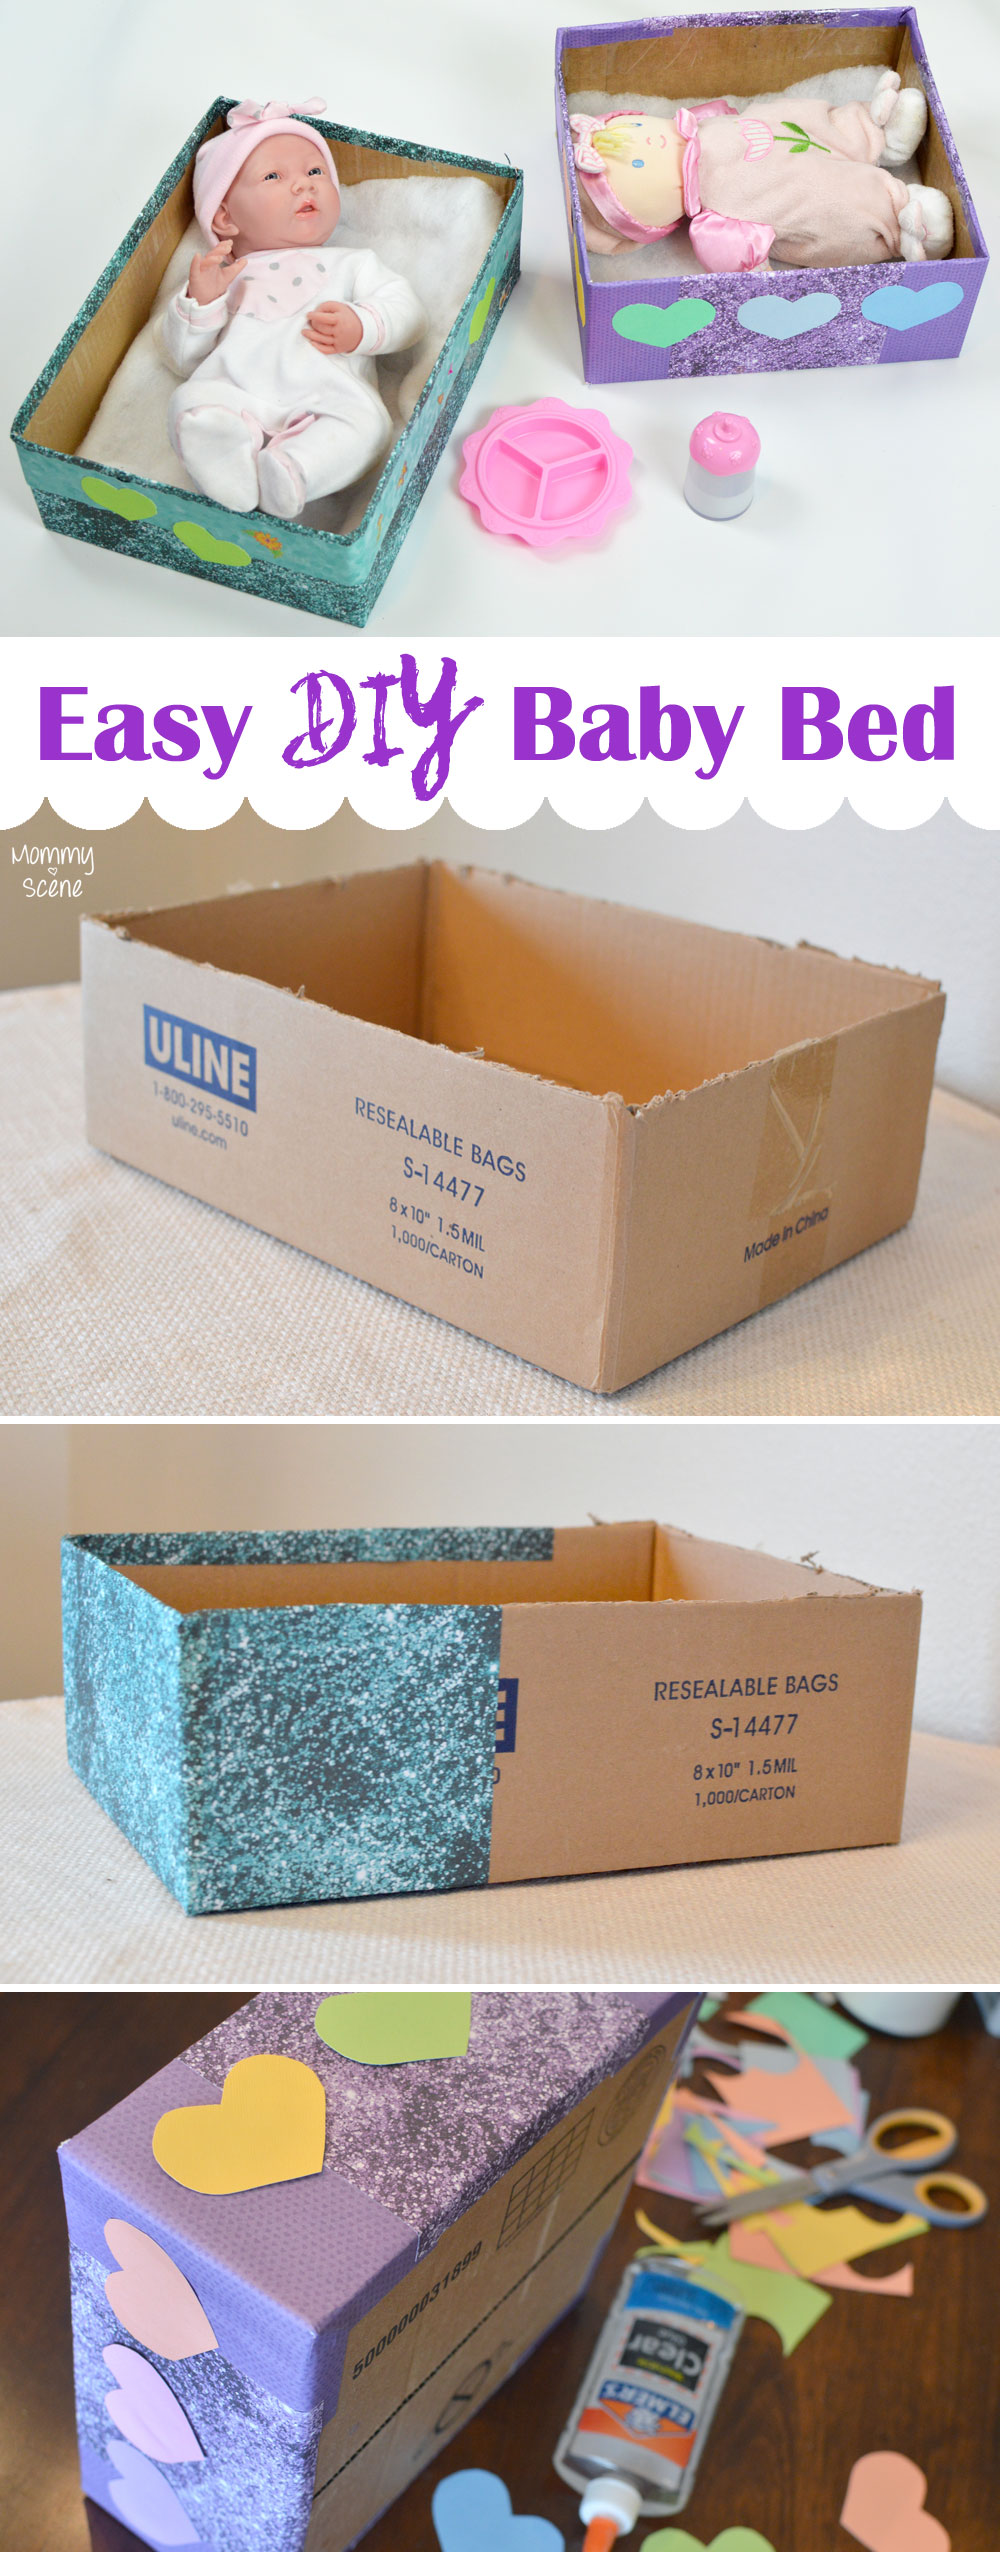 Make a homemade baby doll bed from a cardboard box - Mommy Scene